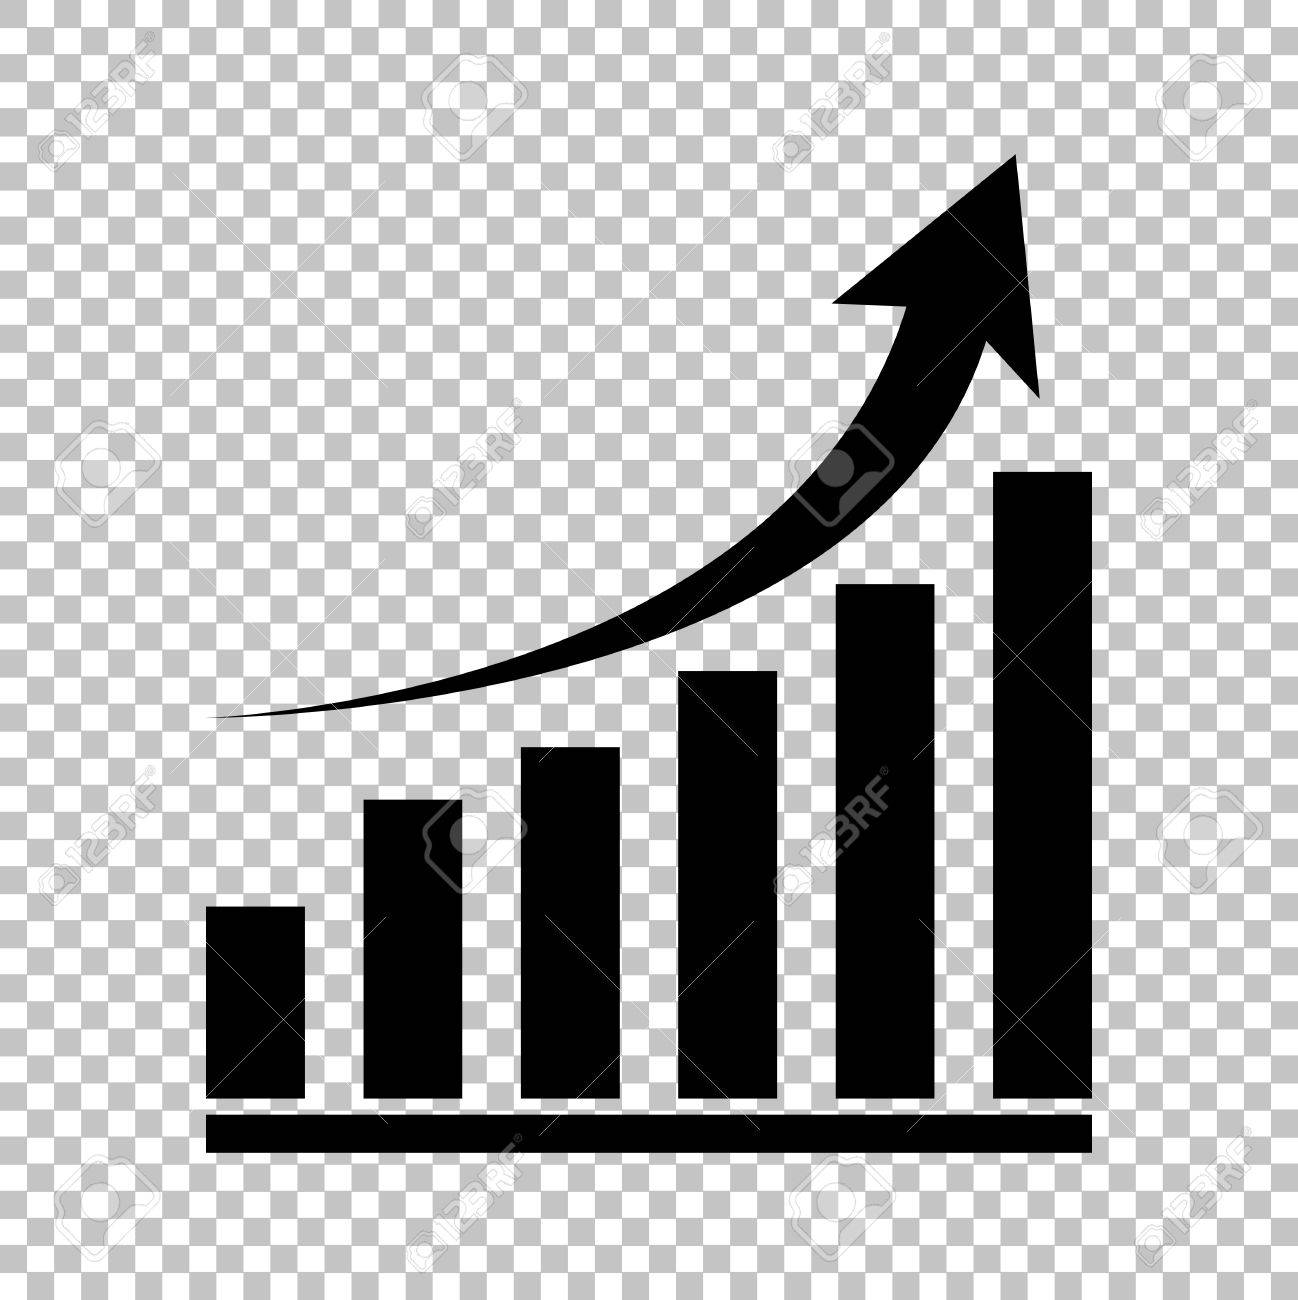 Growing graph sign. Flat style icon on transparent background - 52163159